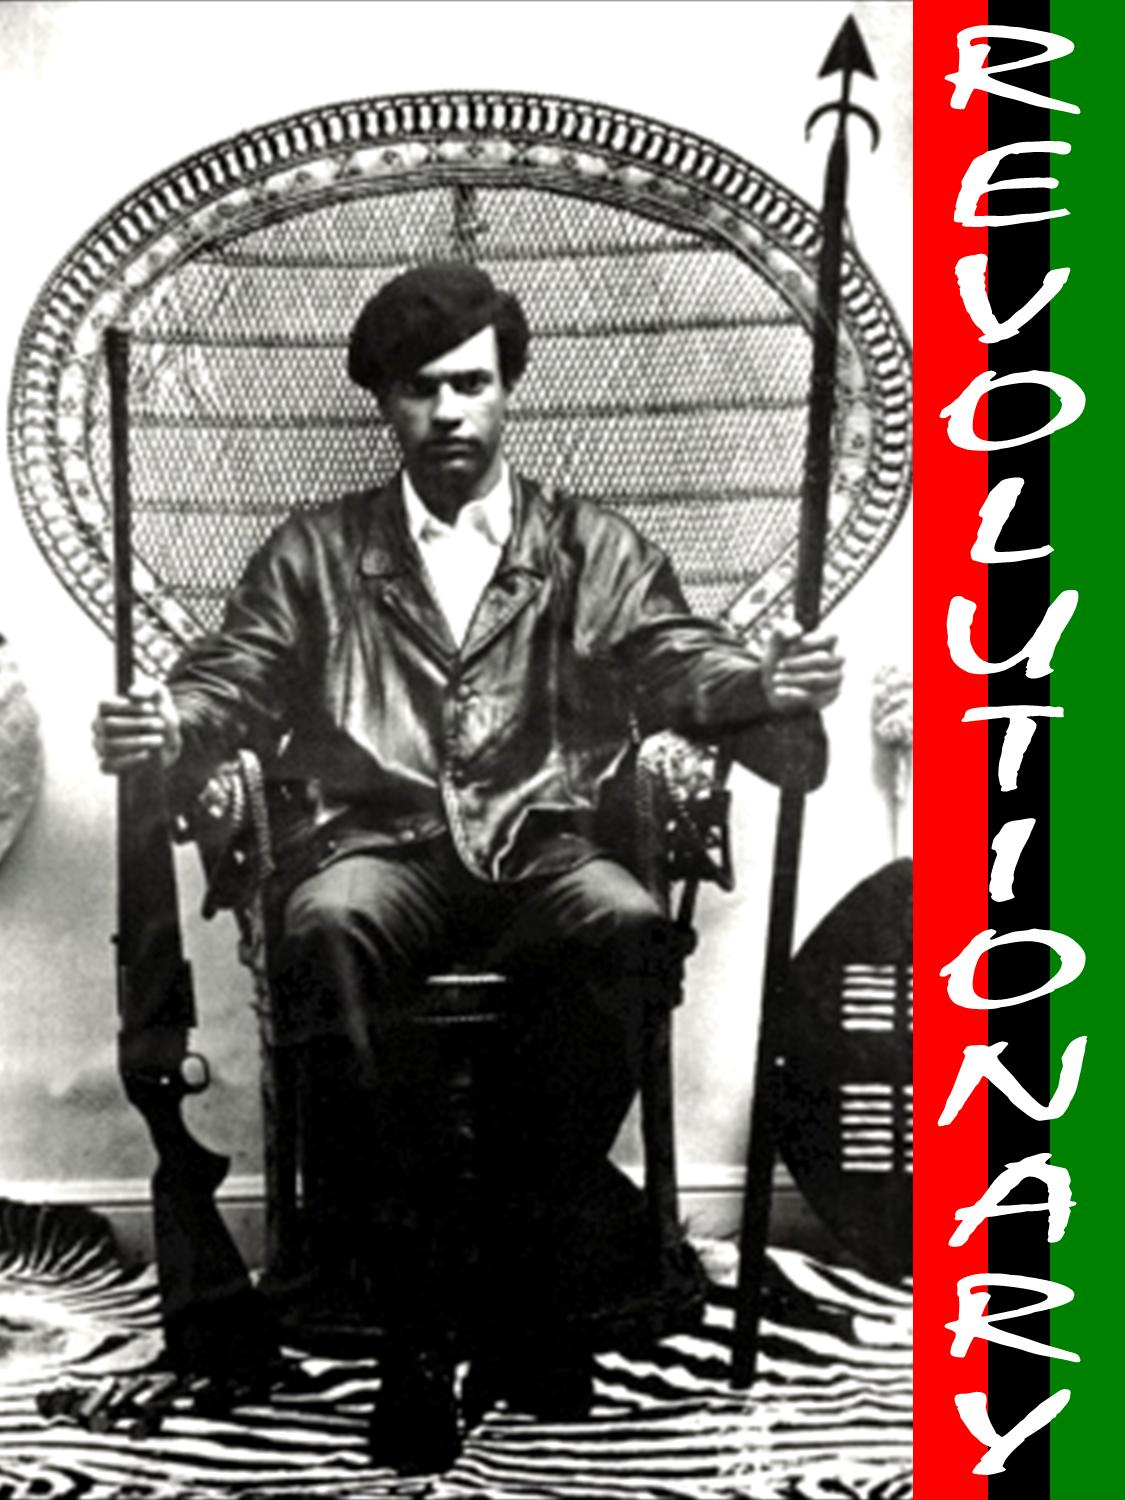 huey p newton dissertation Why black fbi agents owe a debt of library in my teens and seeing dr huey p newton's autobiography published dissertation.